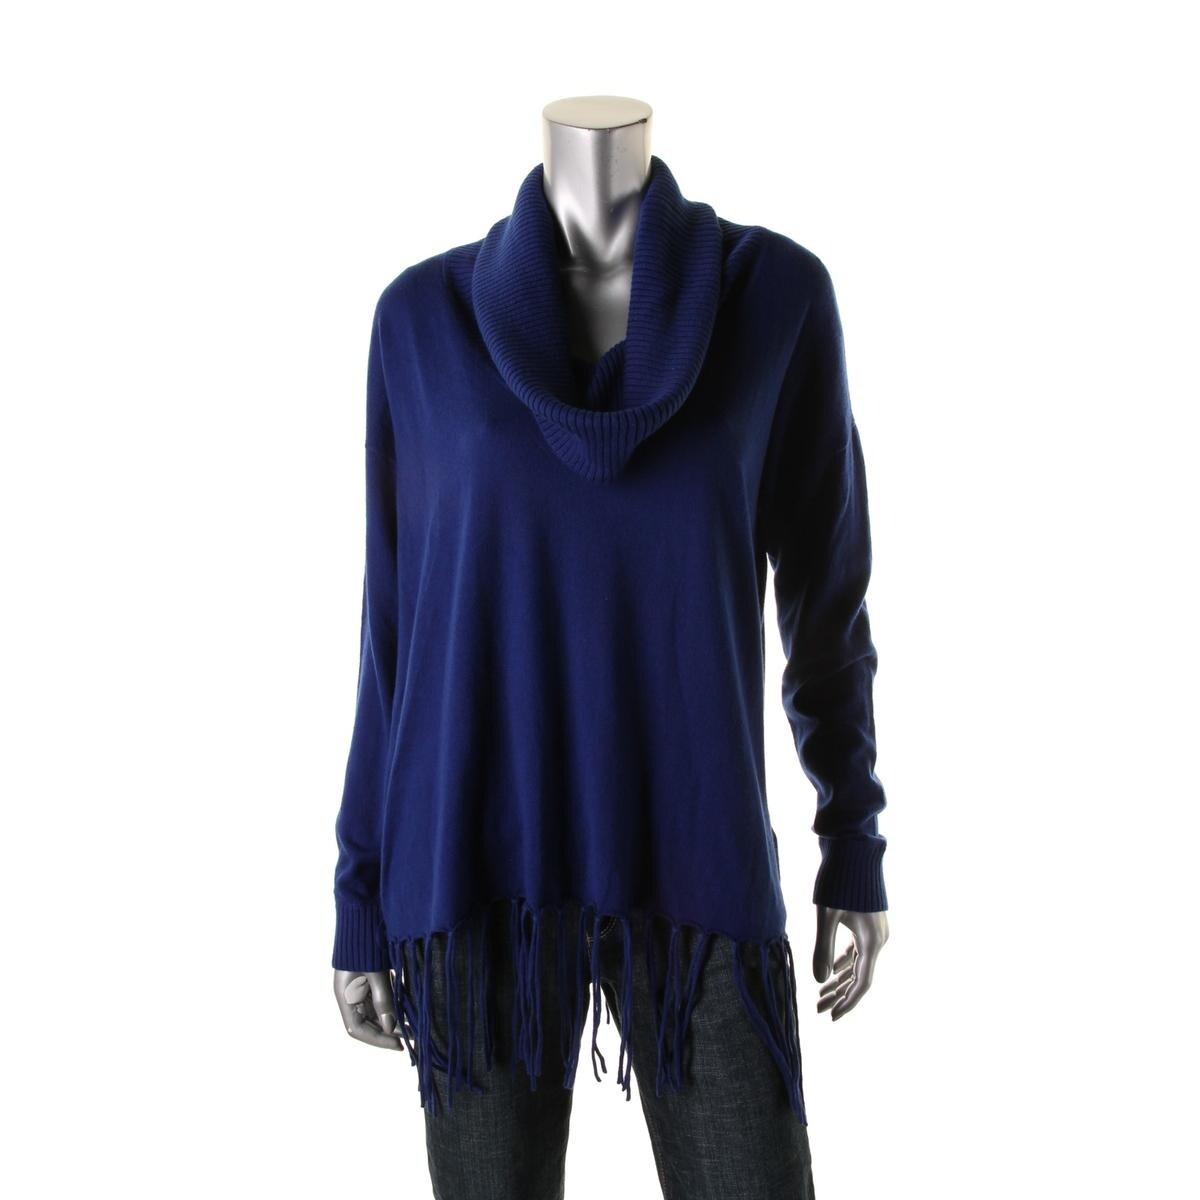 0036ef2f2e59 Shop MICHAEL Michael Kors Womens Pullover Sweater Knit Fringe - Free  Shipping On Orders Over  45 - Overstock.com - 13139247